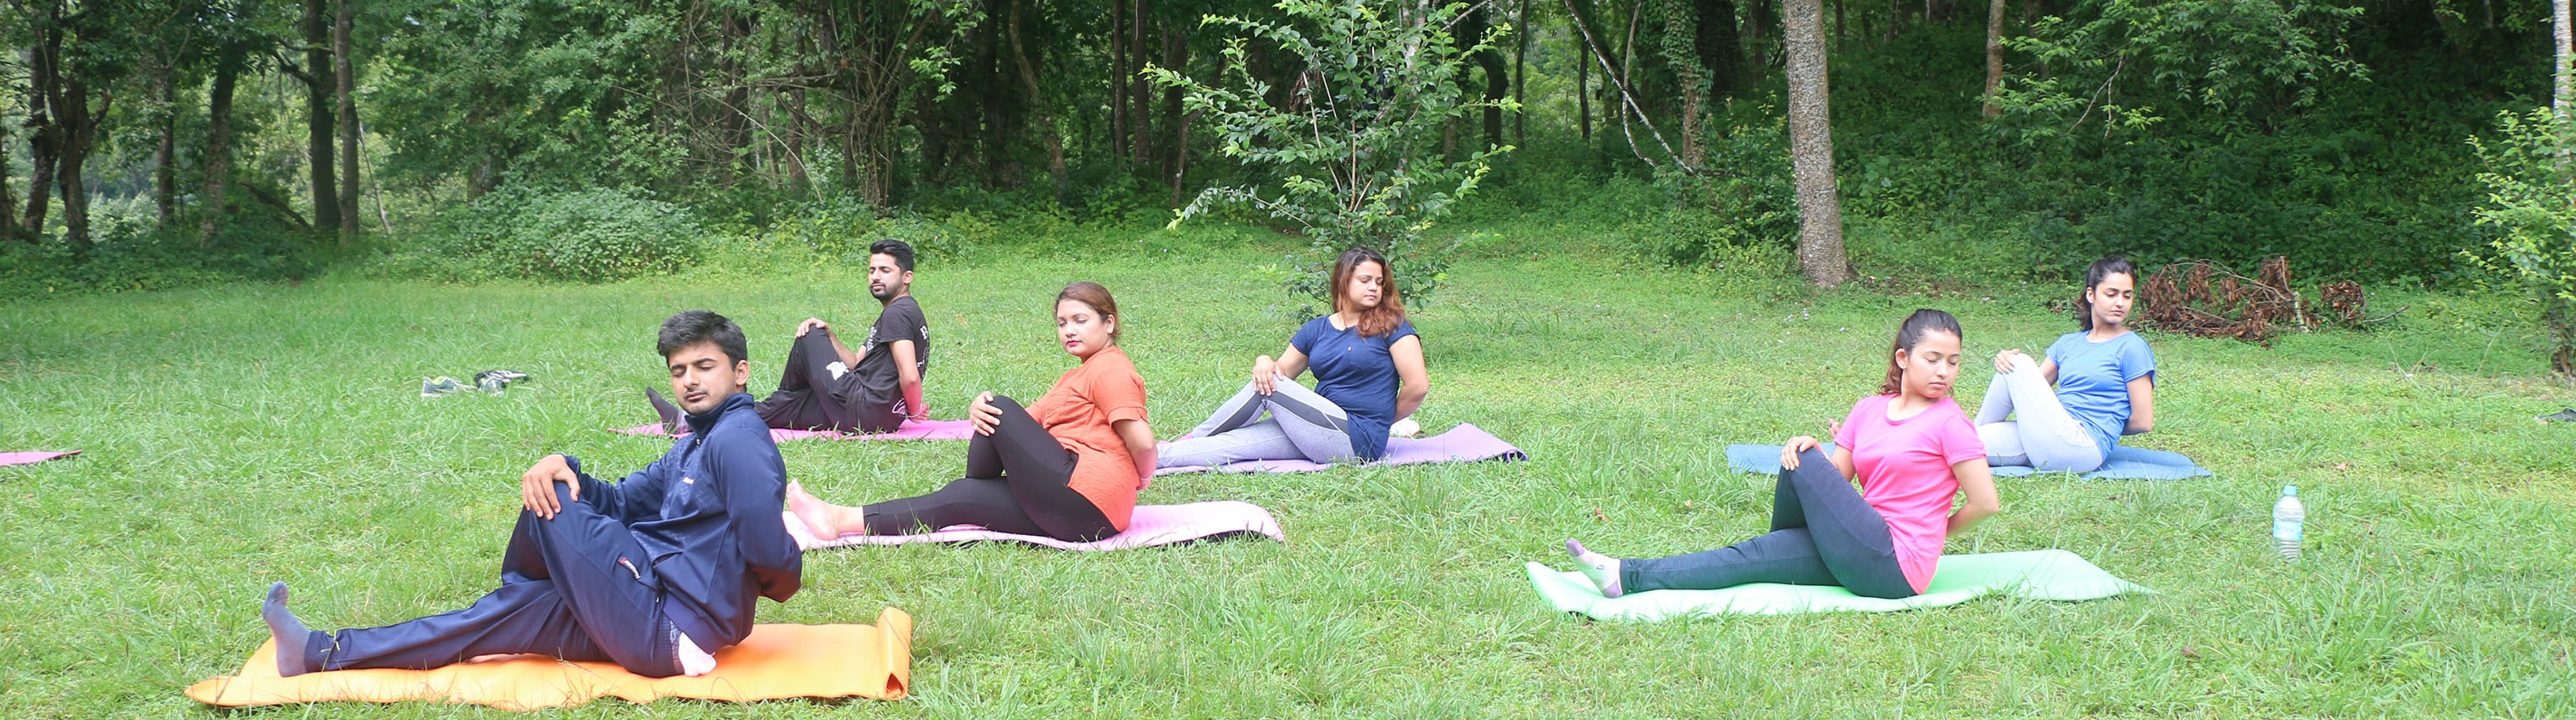 300 hour yoga teacher training course by Nepal Yoga Institute